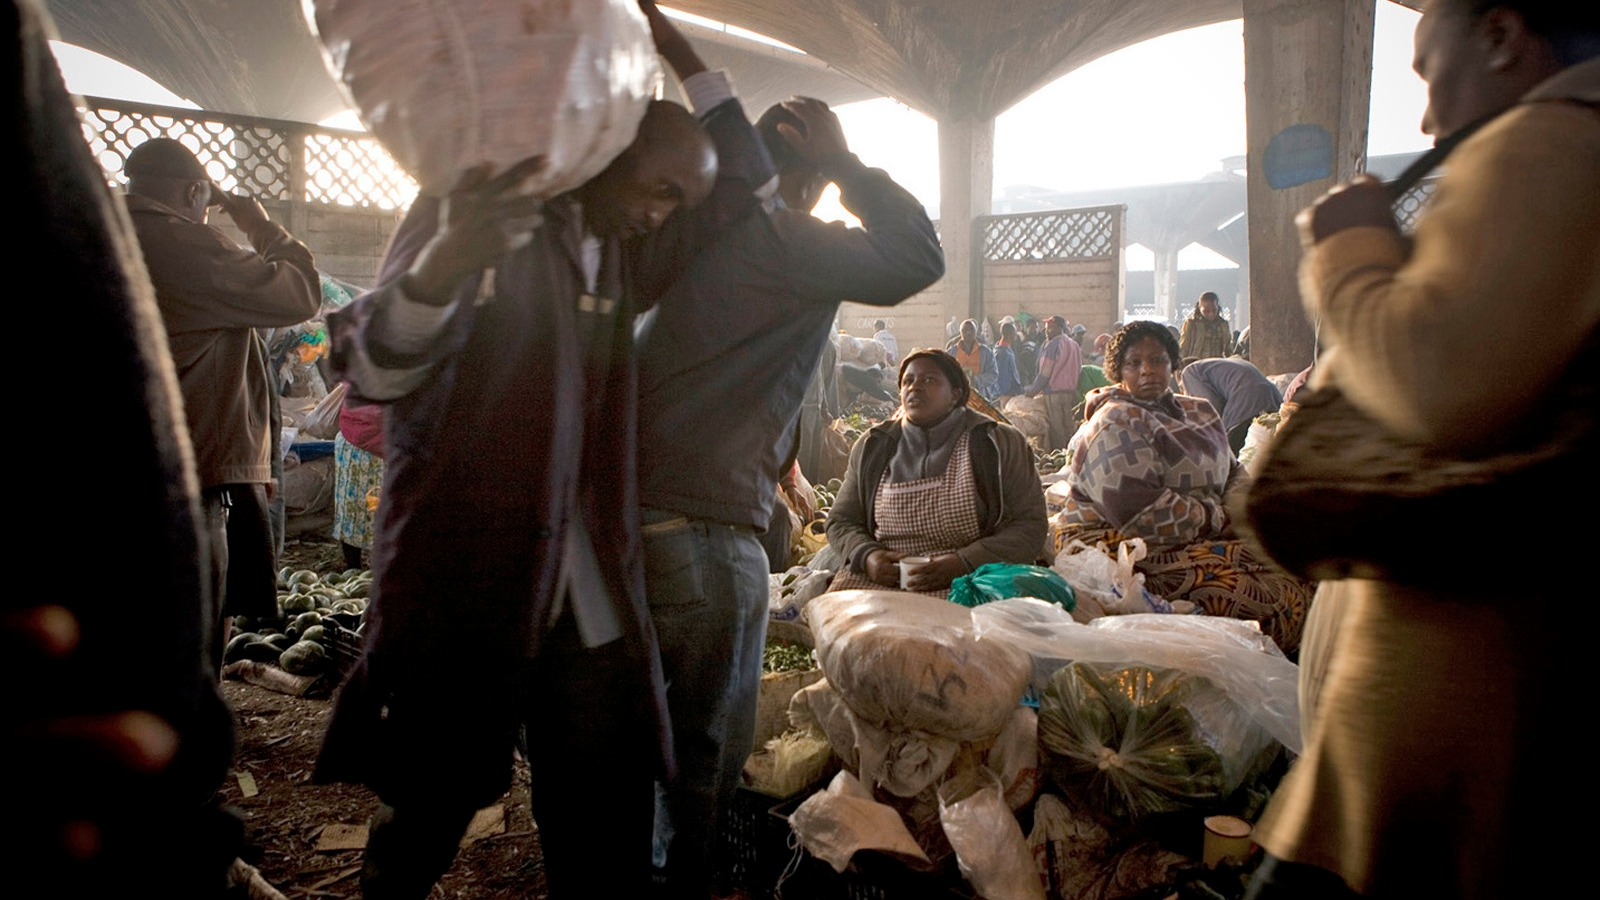 an analysis of the poverty problem of streetboys in egypt Theories of poverty 1 niesr,  the key points that follow from this analysis are:  analyse economic causes and propose potential solutions to the problem, we.